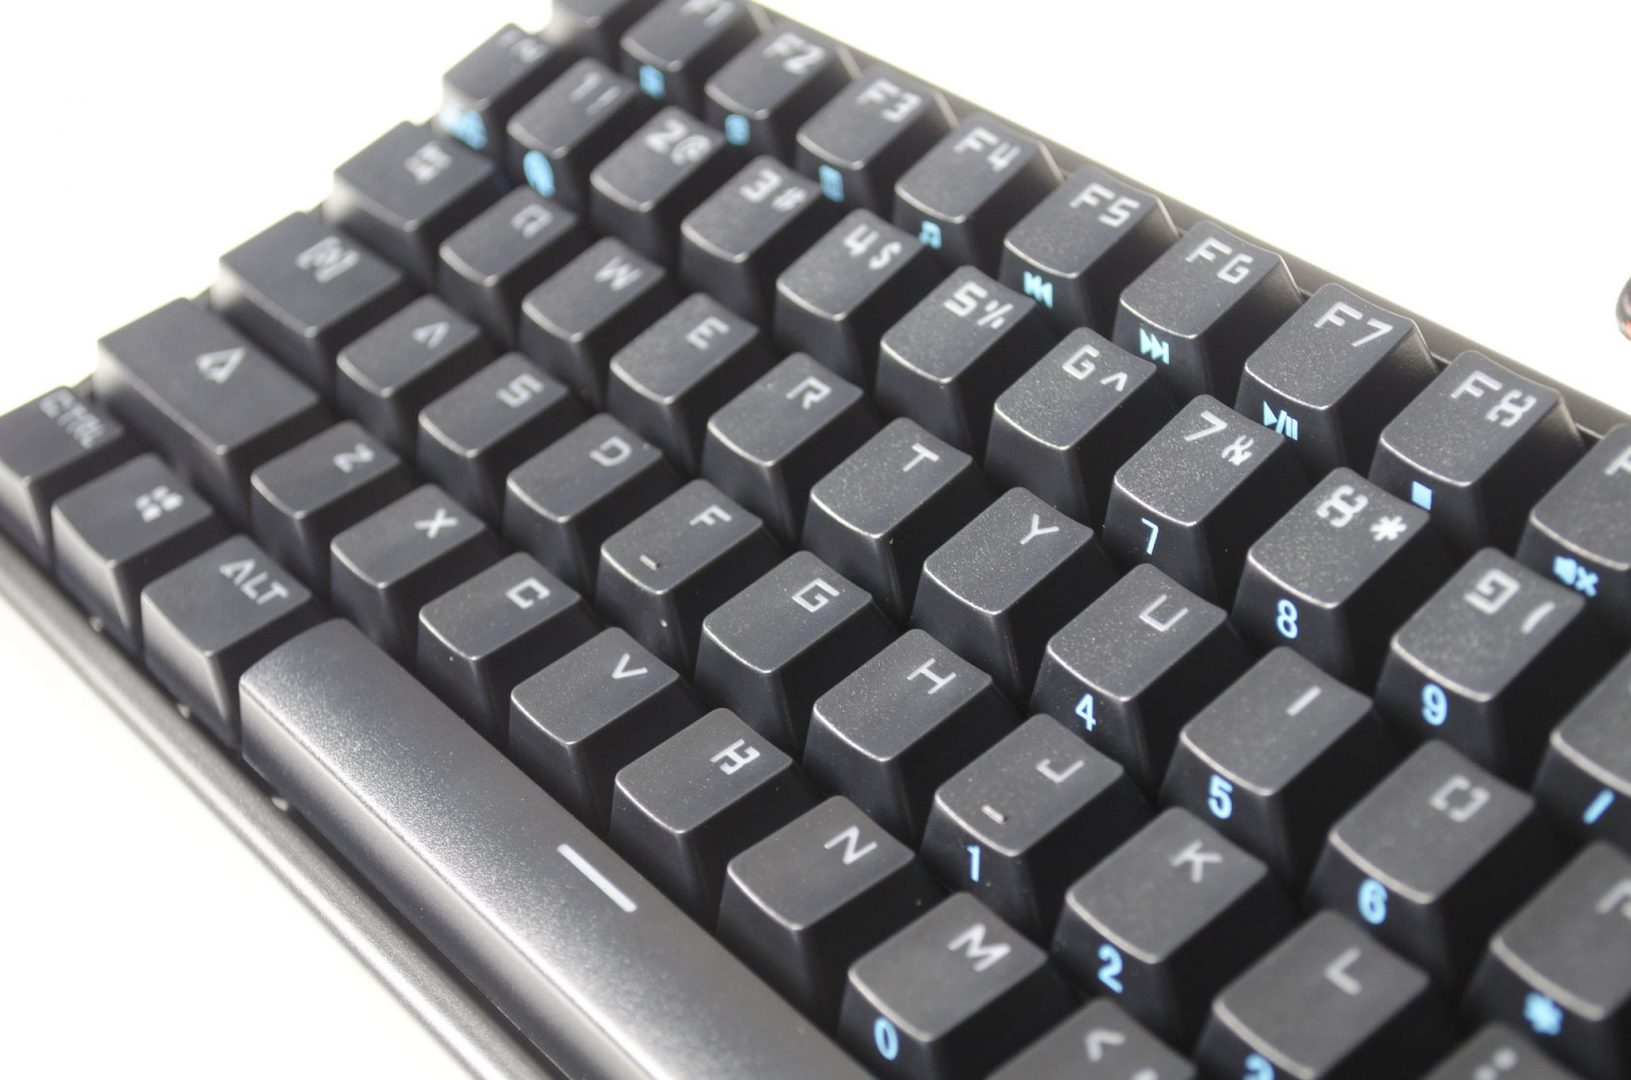 drevo gramr keyboard review_5